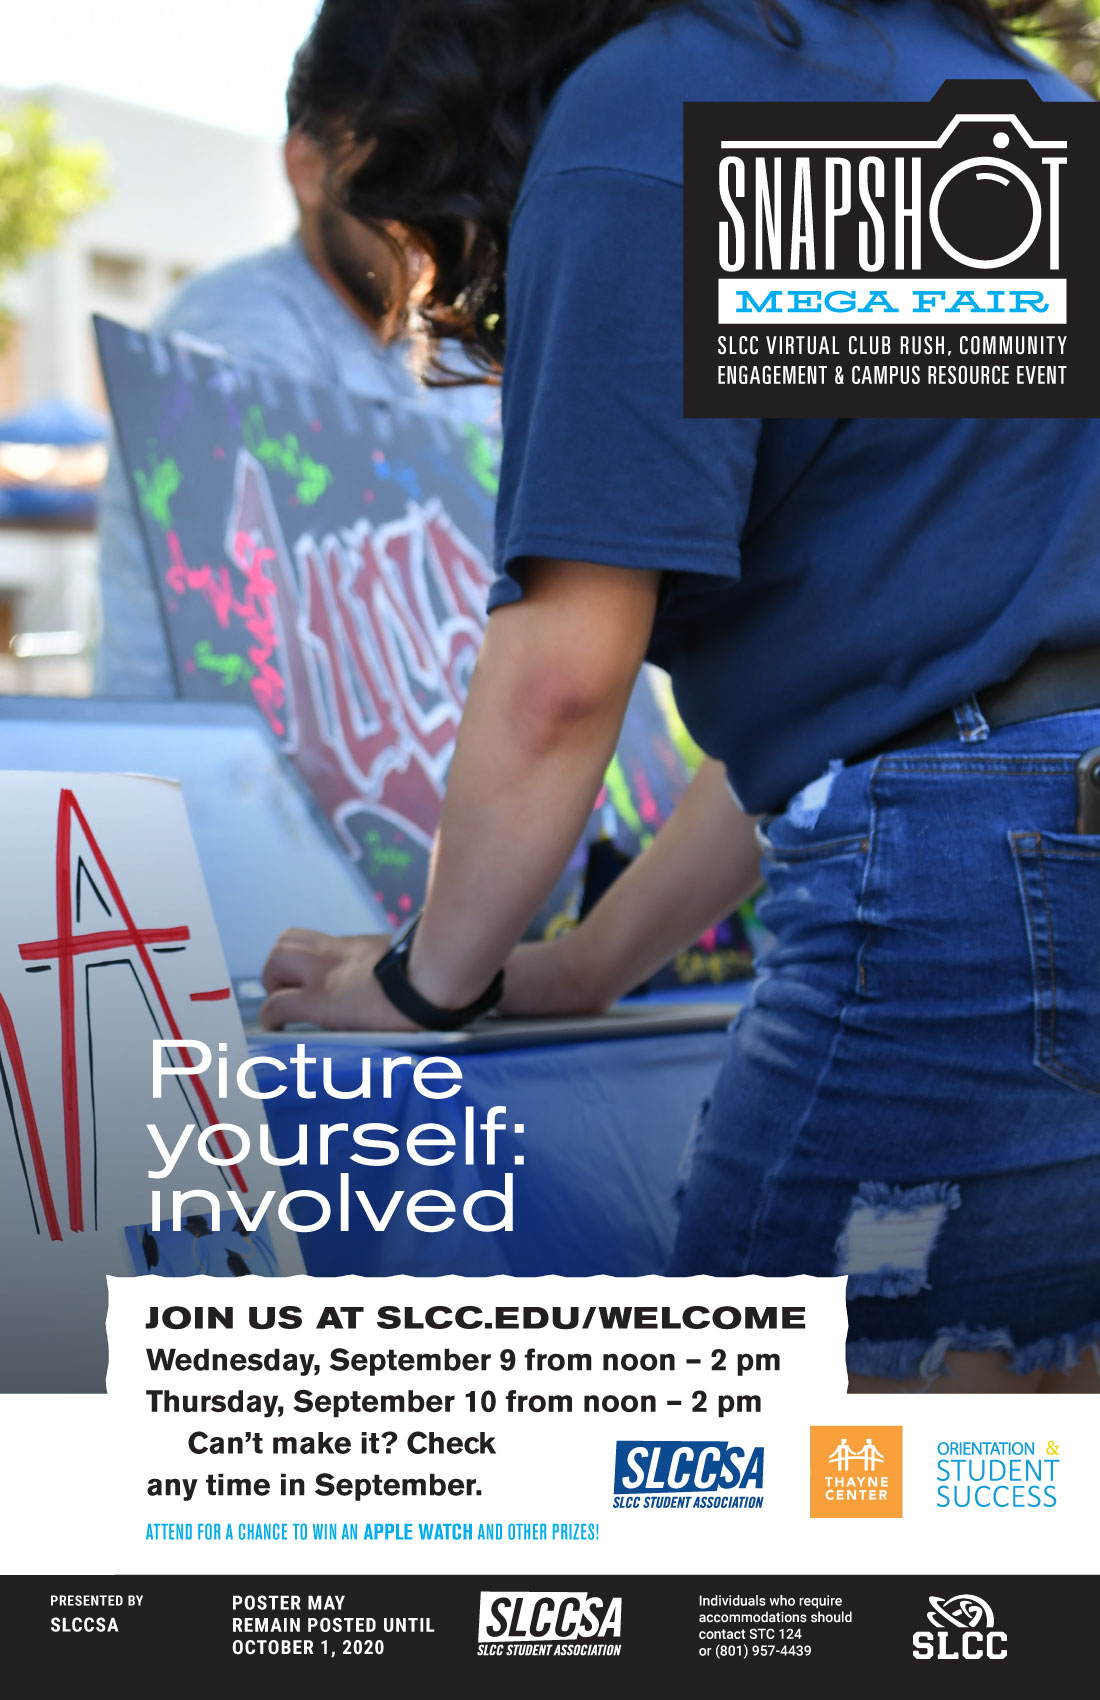 Picture yourself: involved at Snapshot Mega Fair